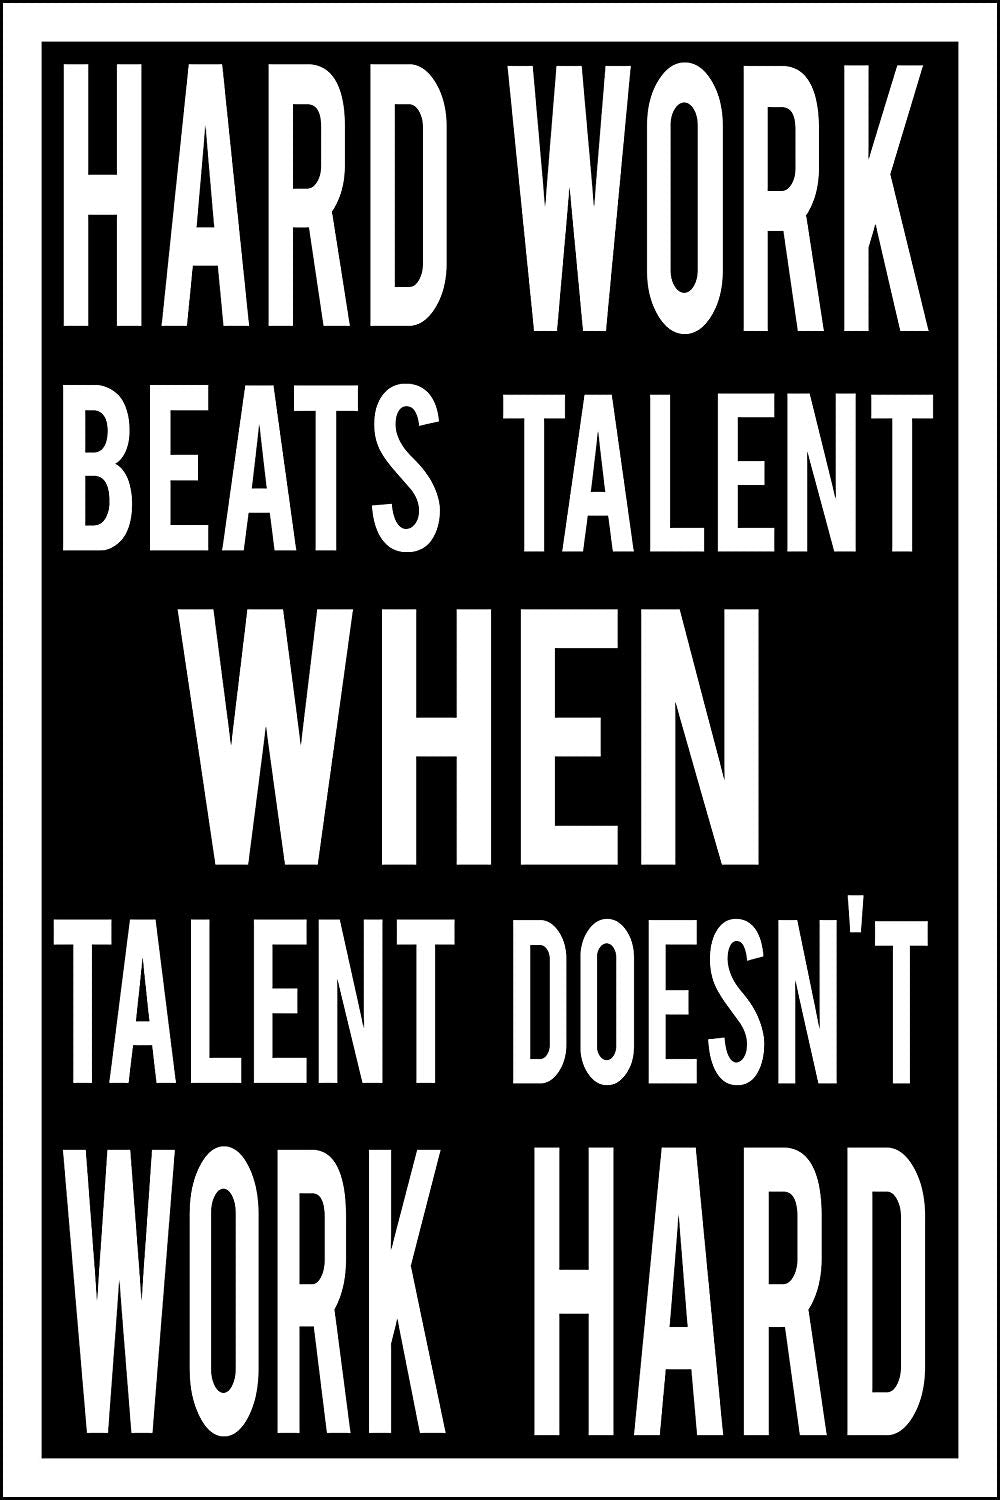 "Spitzy's Hard Work Beats Talent When Talent Doesn't Work Hard Motivational Poster (12"" x 18"" Dimensions Include a White .5"" Border)"